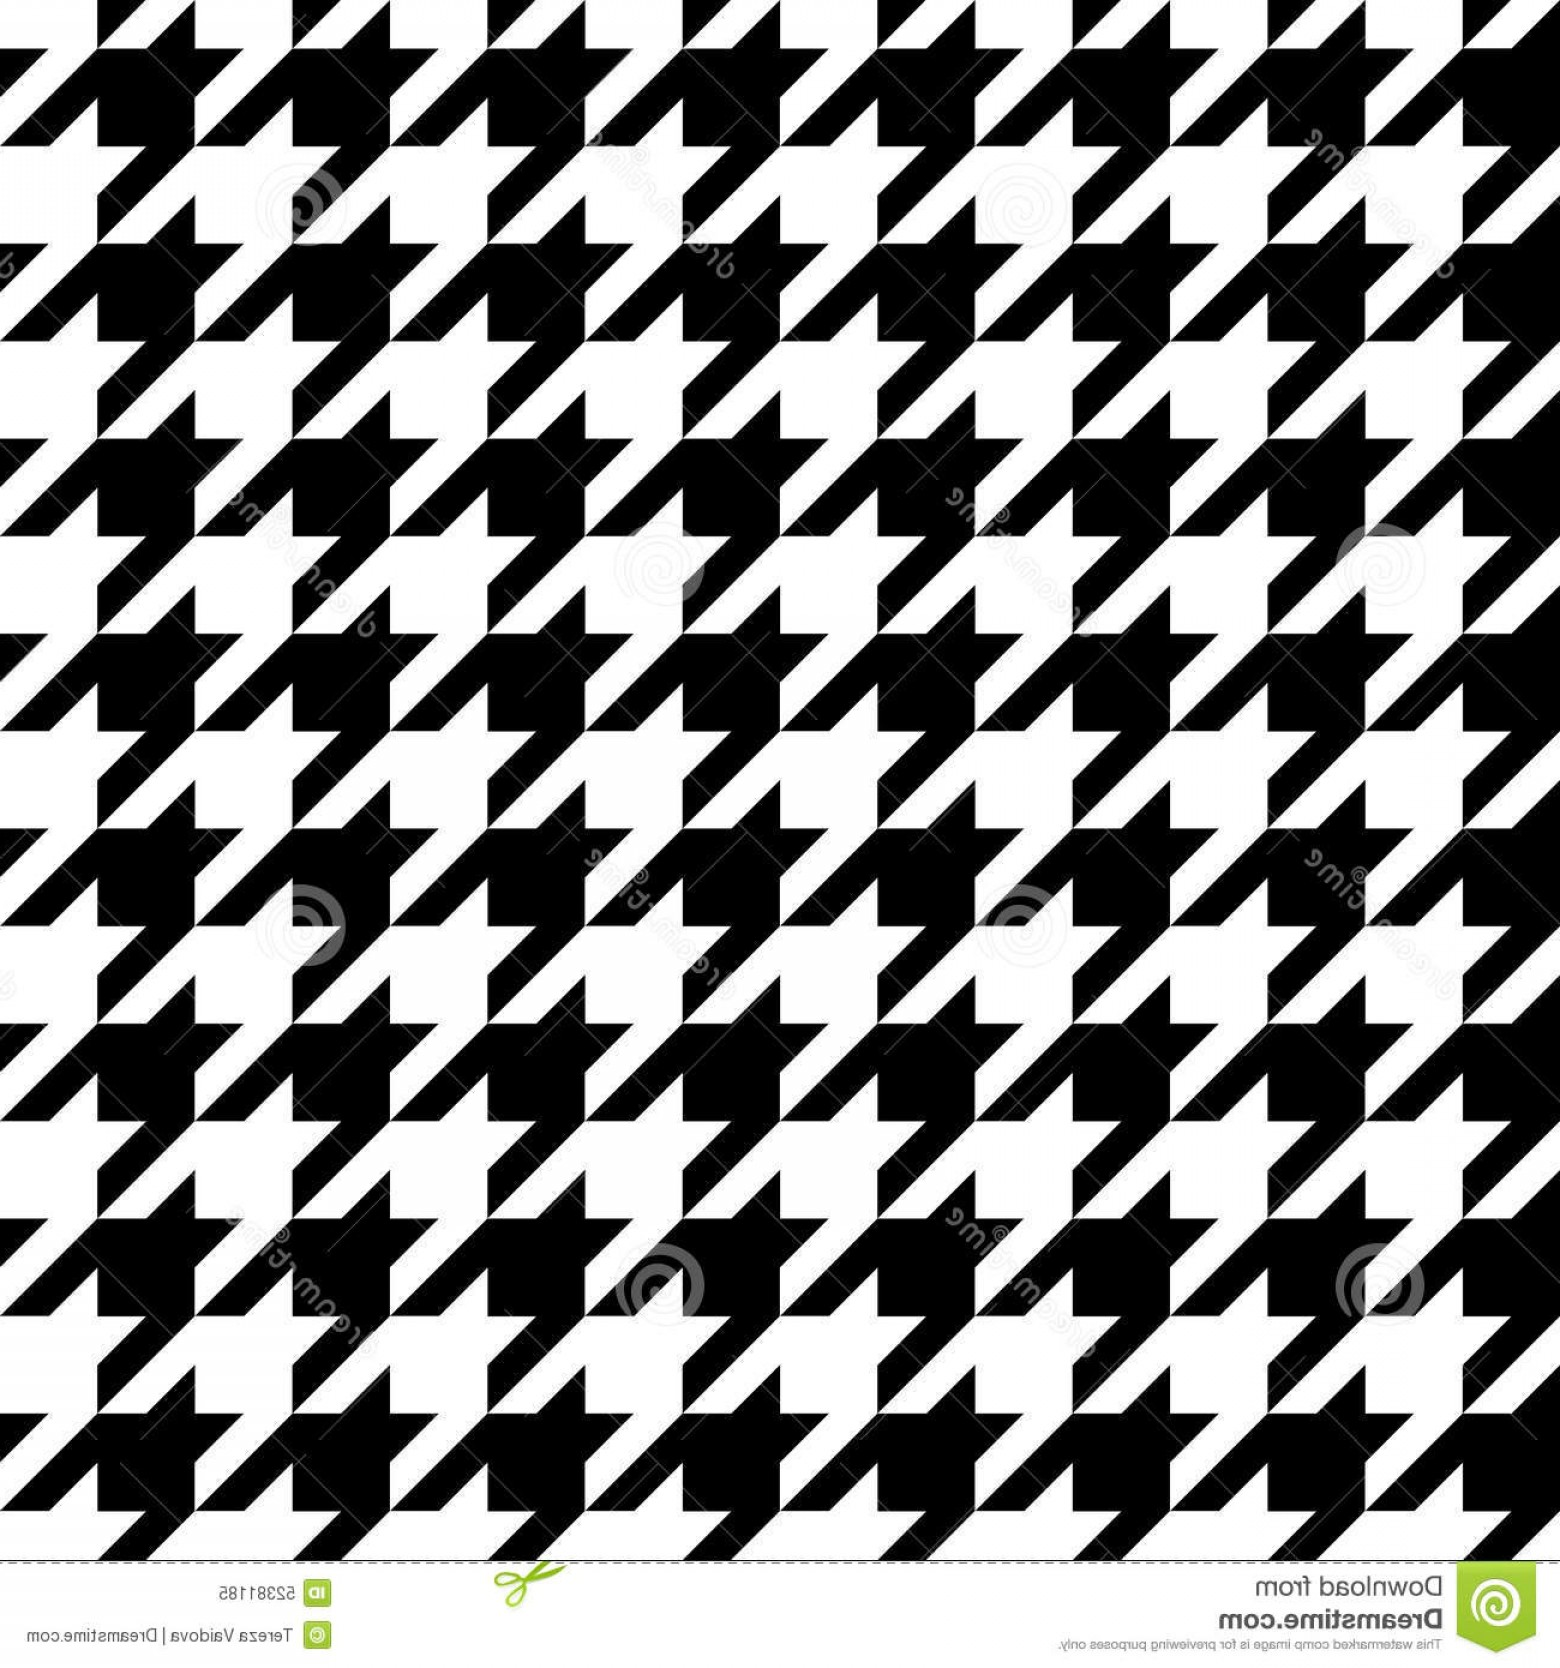 Houndstooth Hats Vector: Houndstooth Check Black White Fabric Pattern Texture Illustration